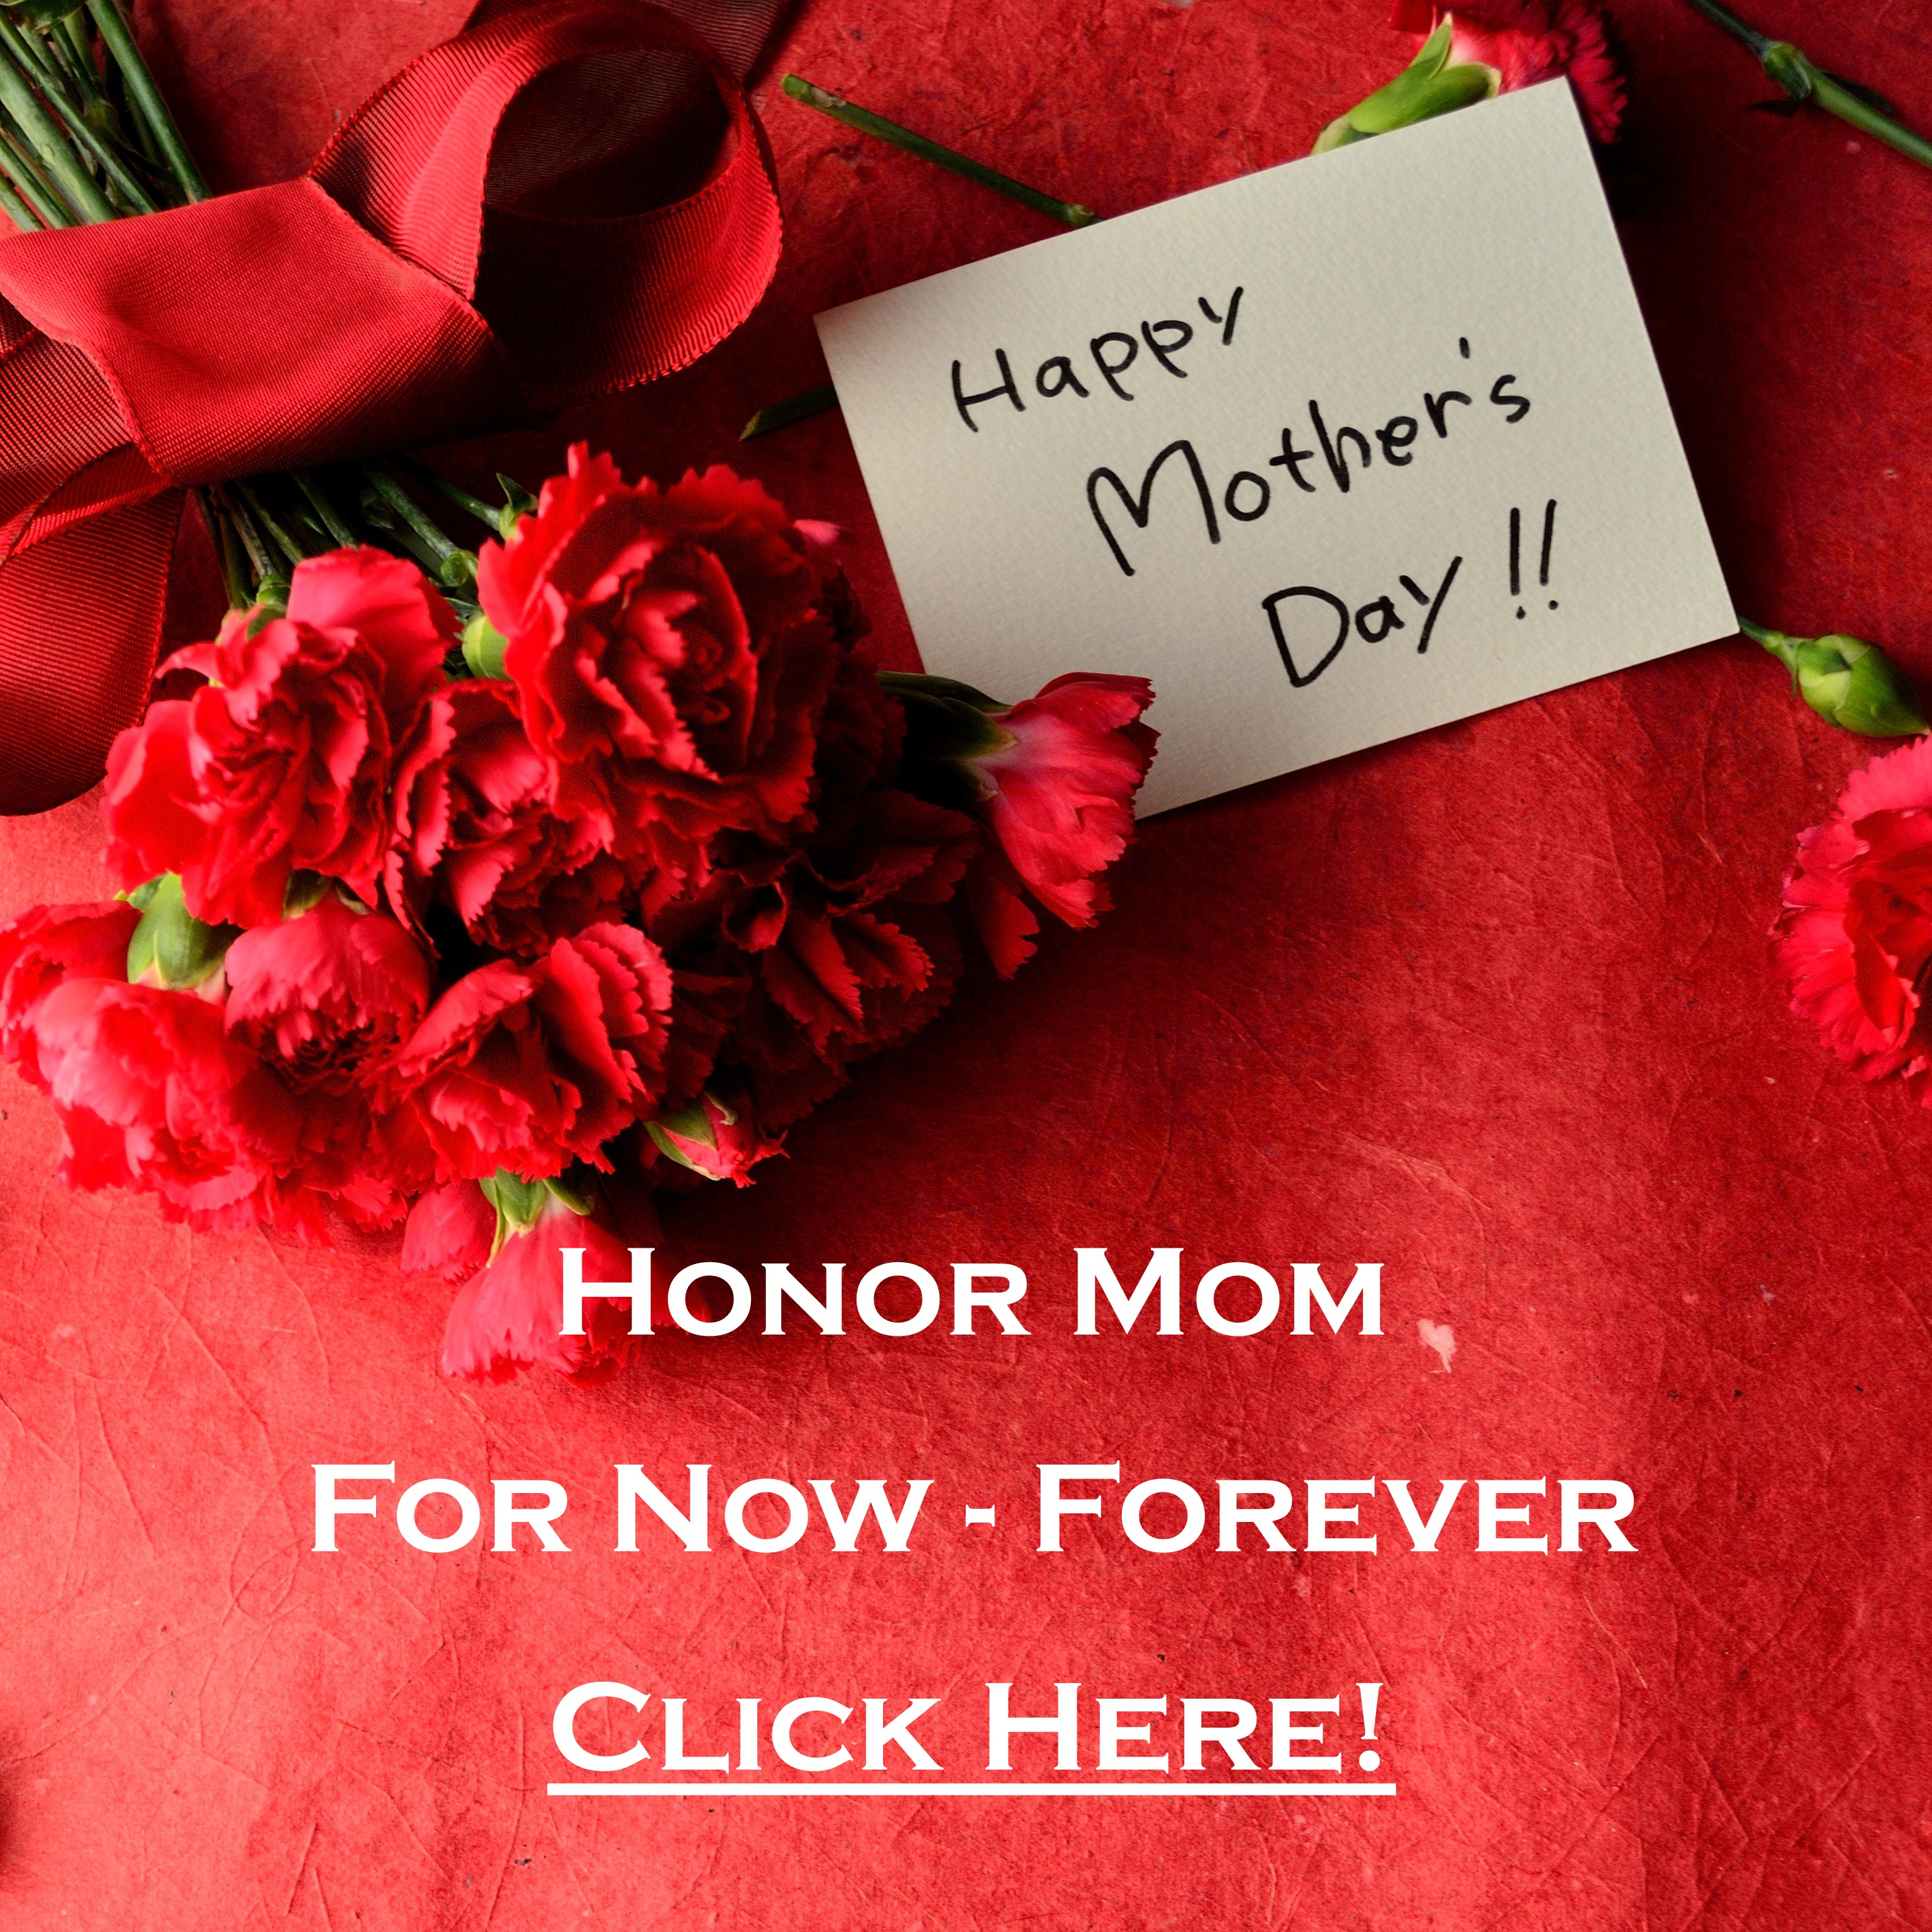 Honor Mom on Mothers Day 2017